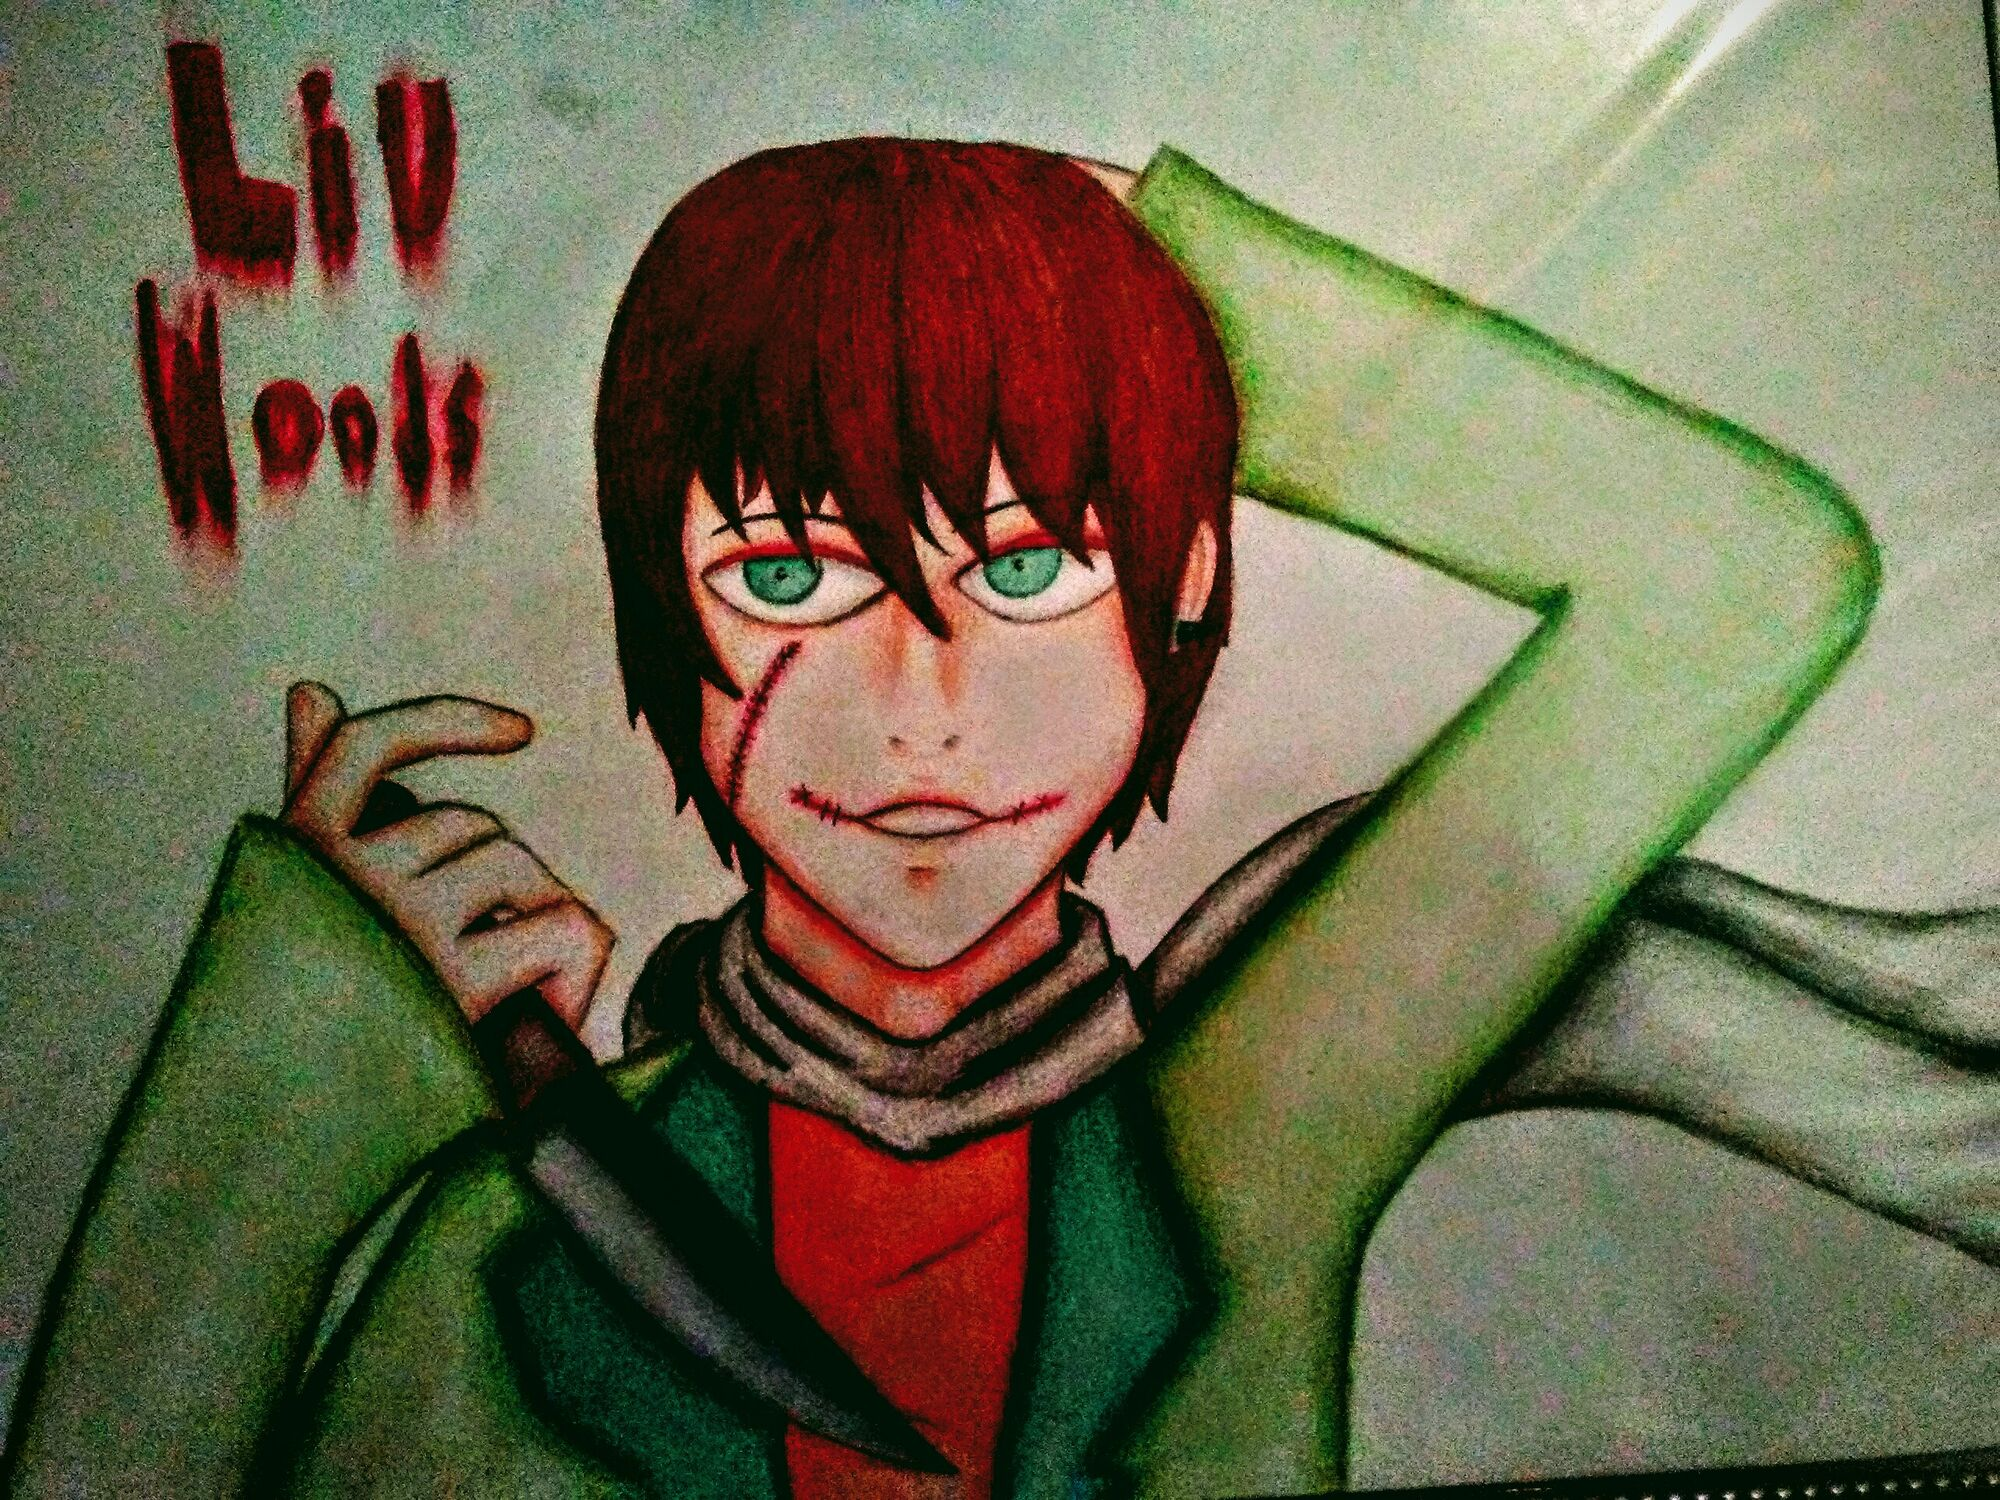 Homicidal Liu | Creepypasta Files Wikia | FANDOM powered ... | 2000 x 1500 jpeg 720kB